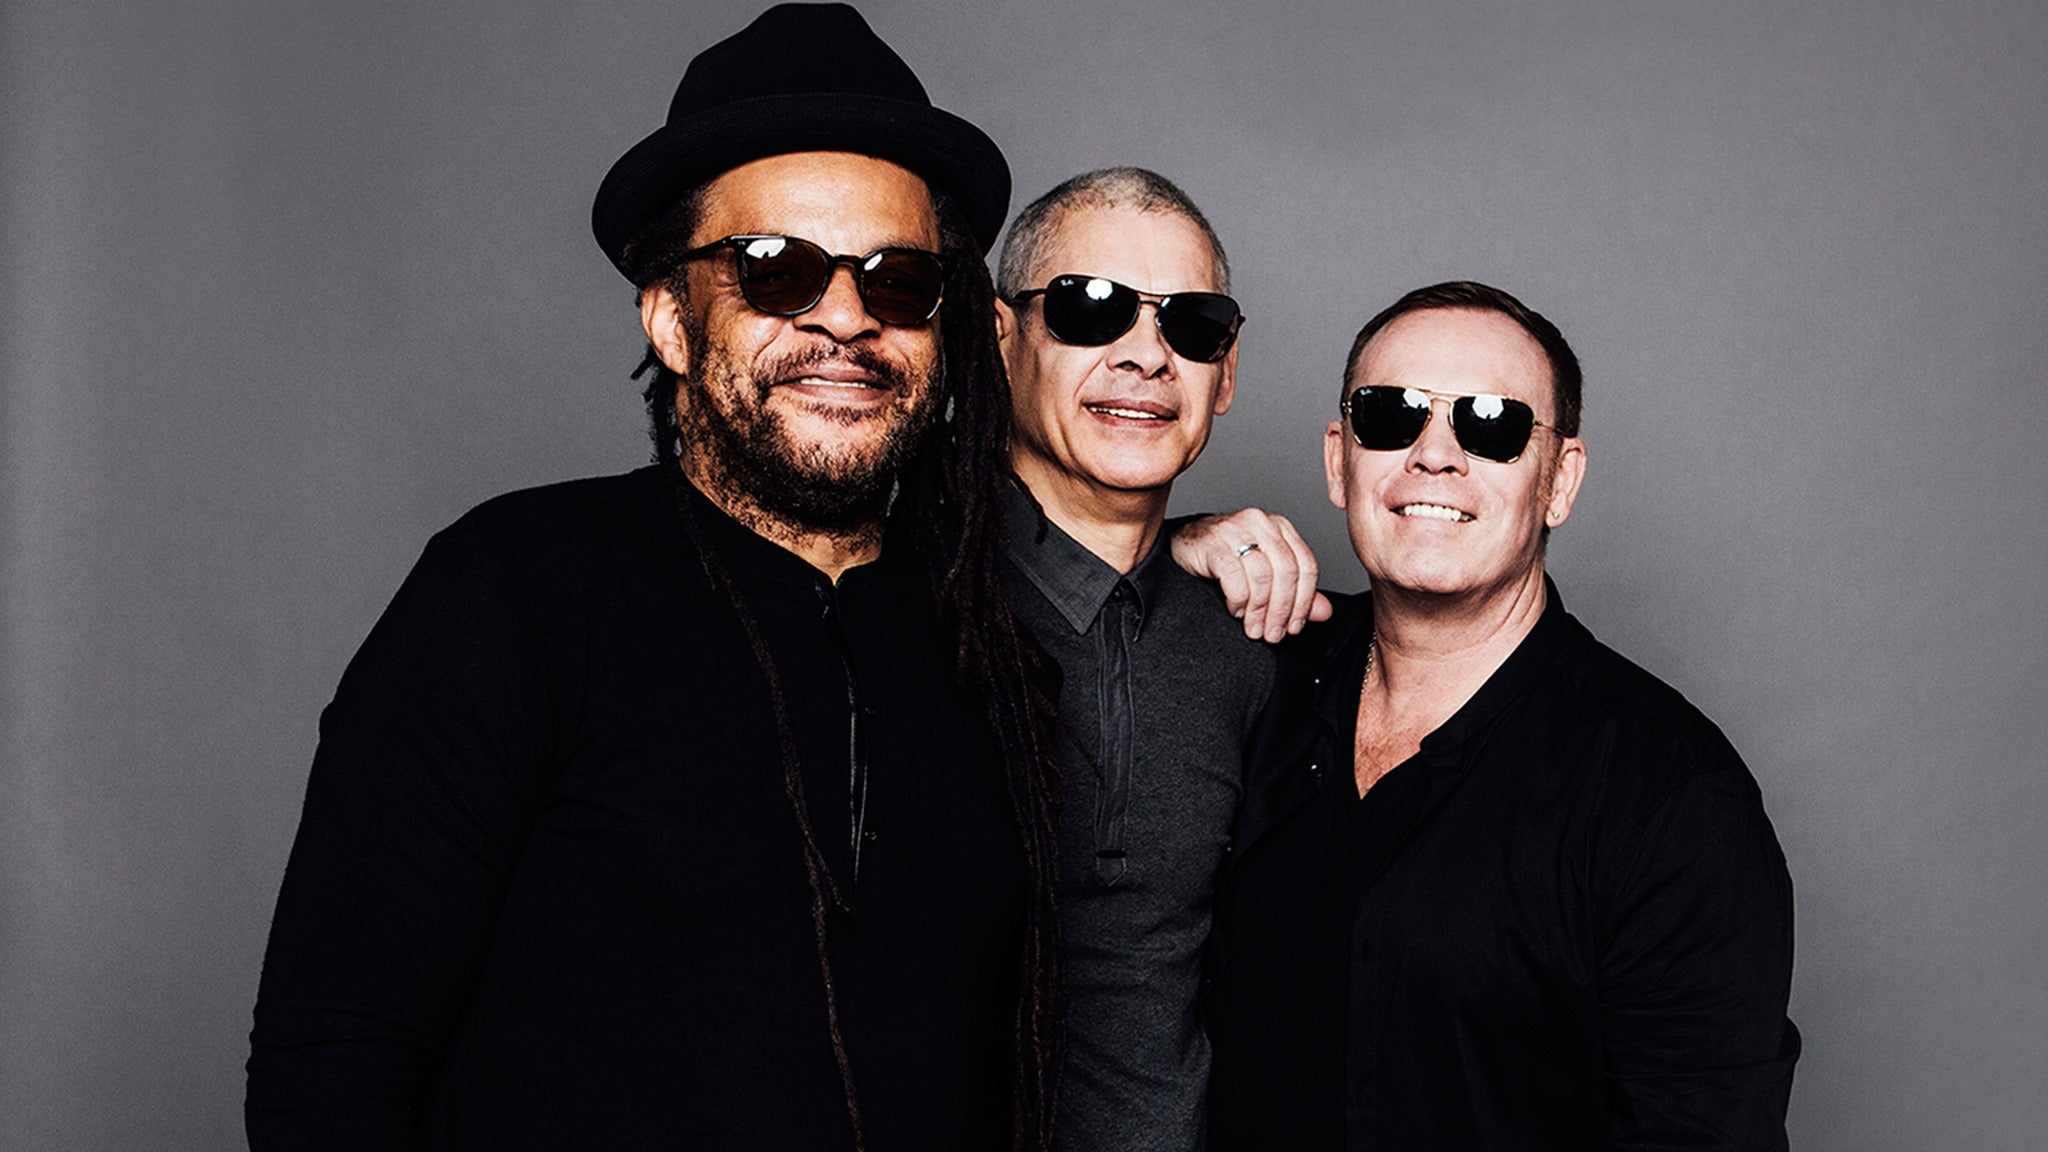 UB40 Legends Ali, Astro & Mickey at Howard Theatre